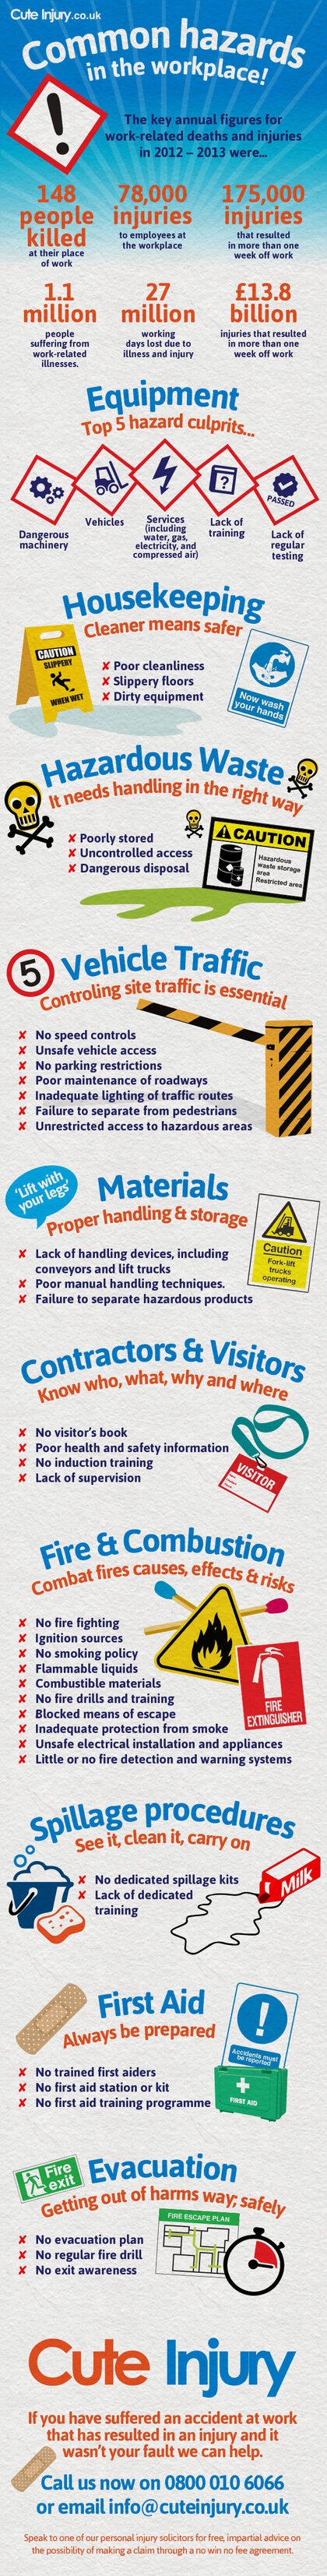 Infographic describes common hazards in the workplace